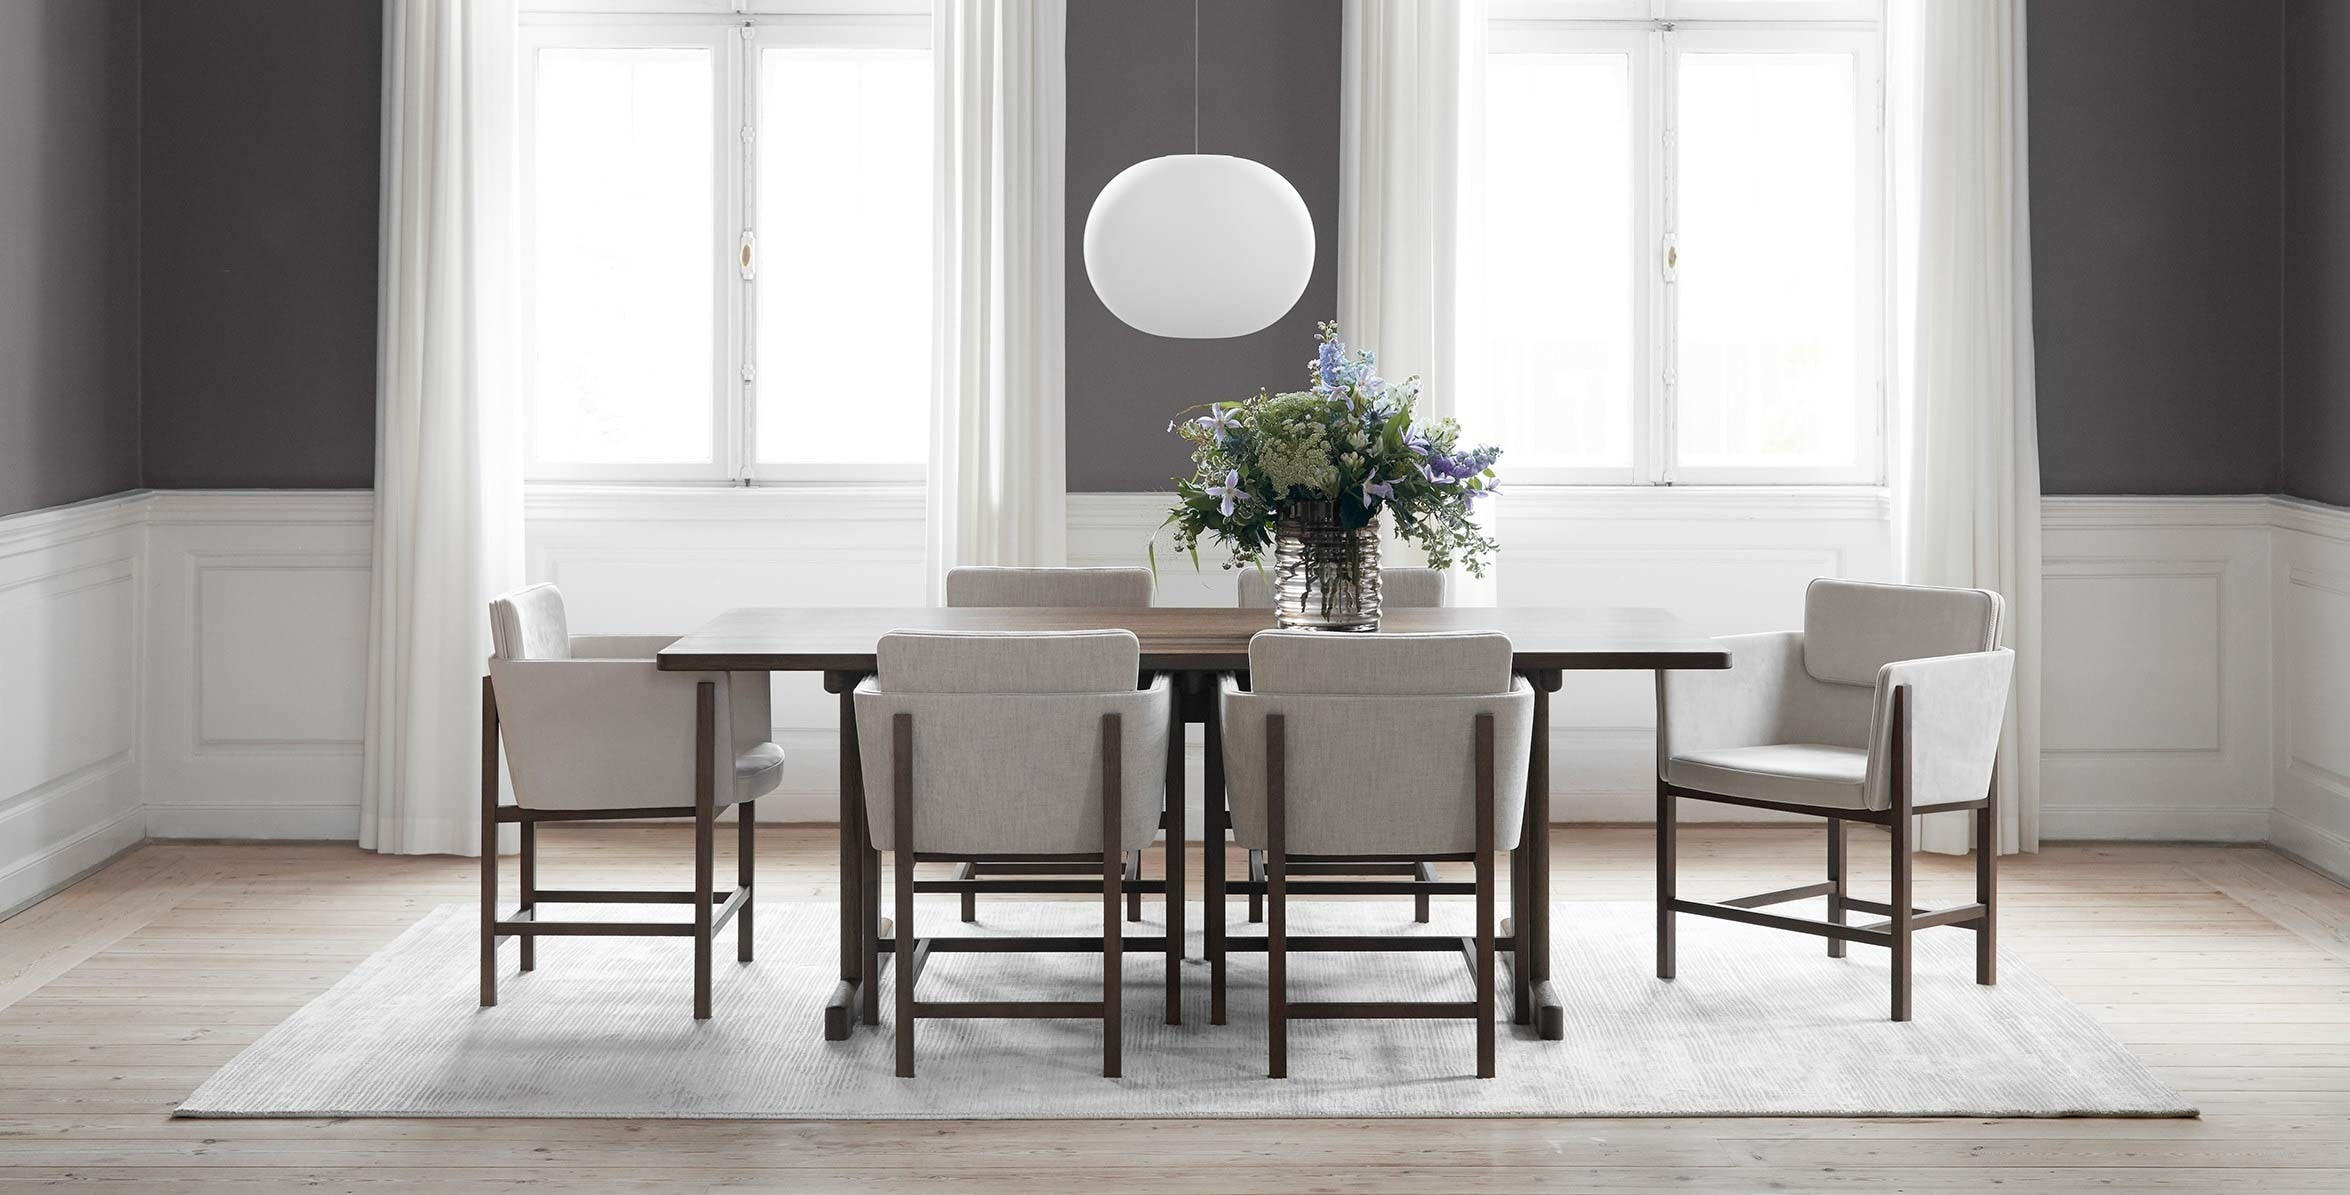 Fredericia Furniture Collection